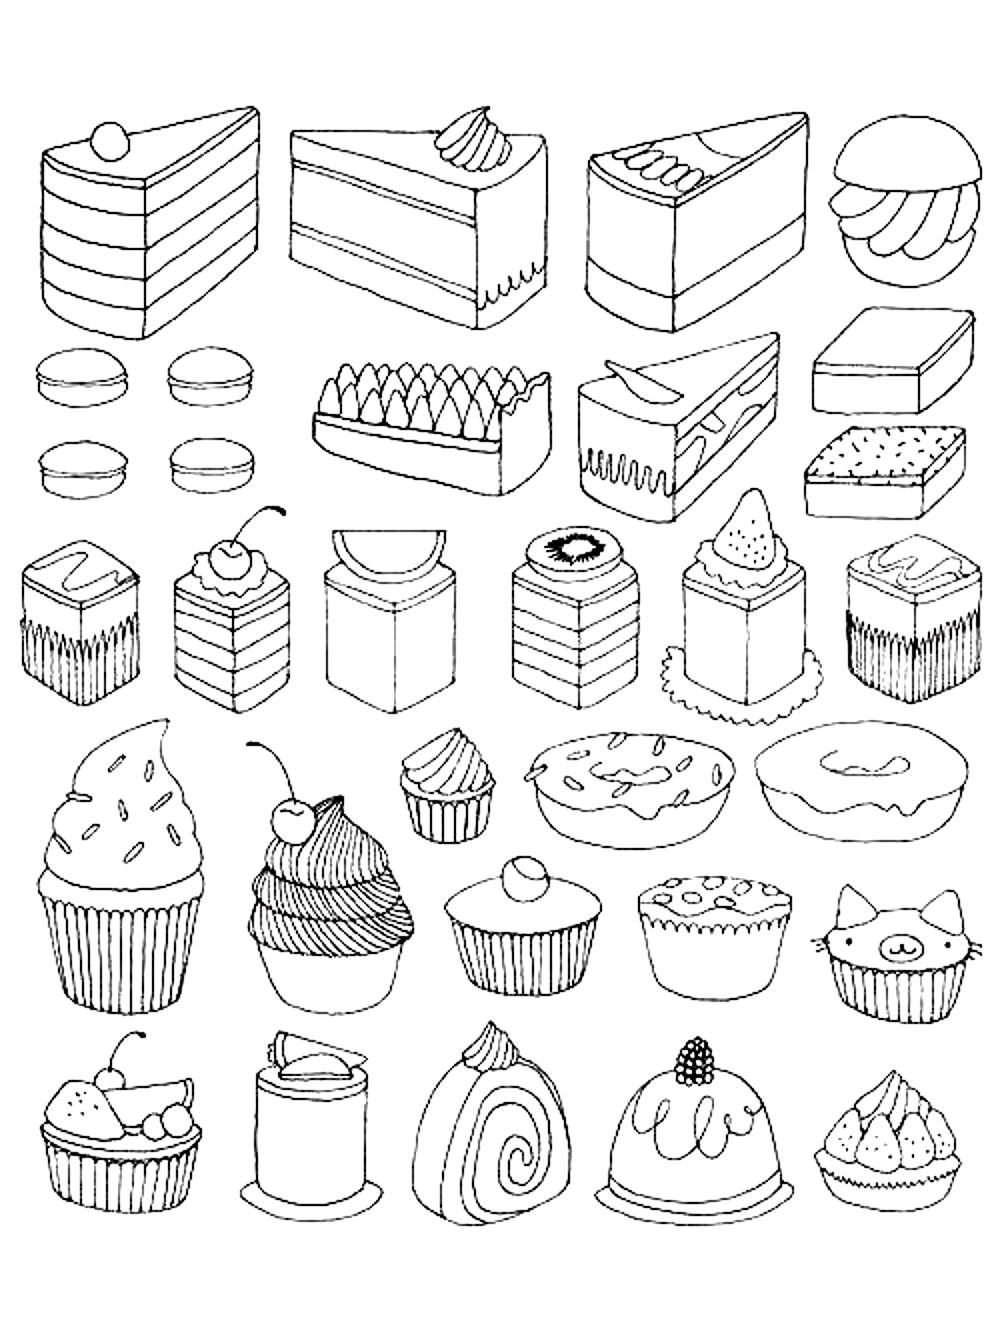 Dessert Drawing At Getdrawings Com Free For Personal Use Dessert